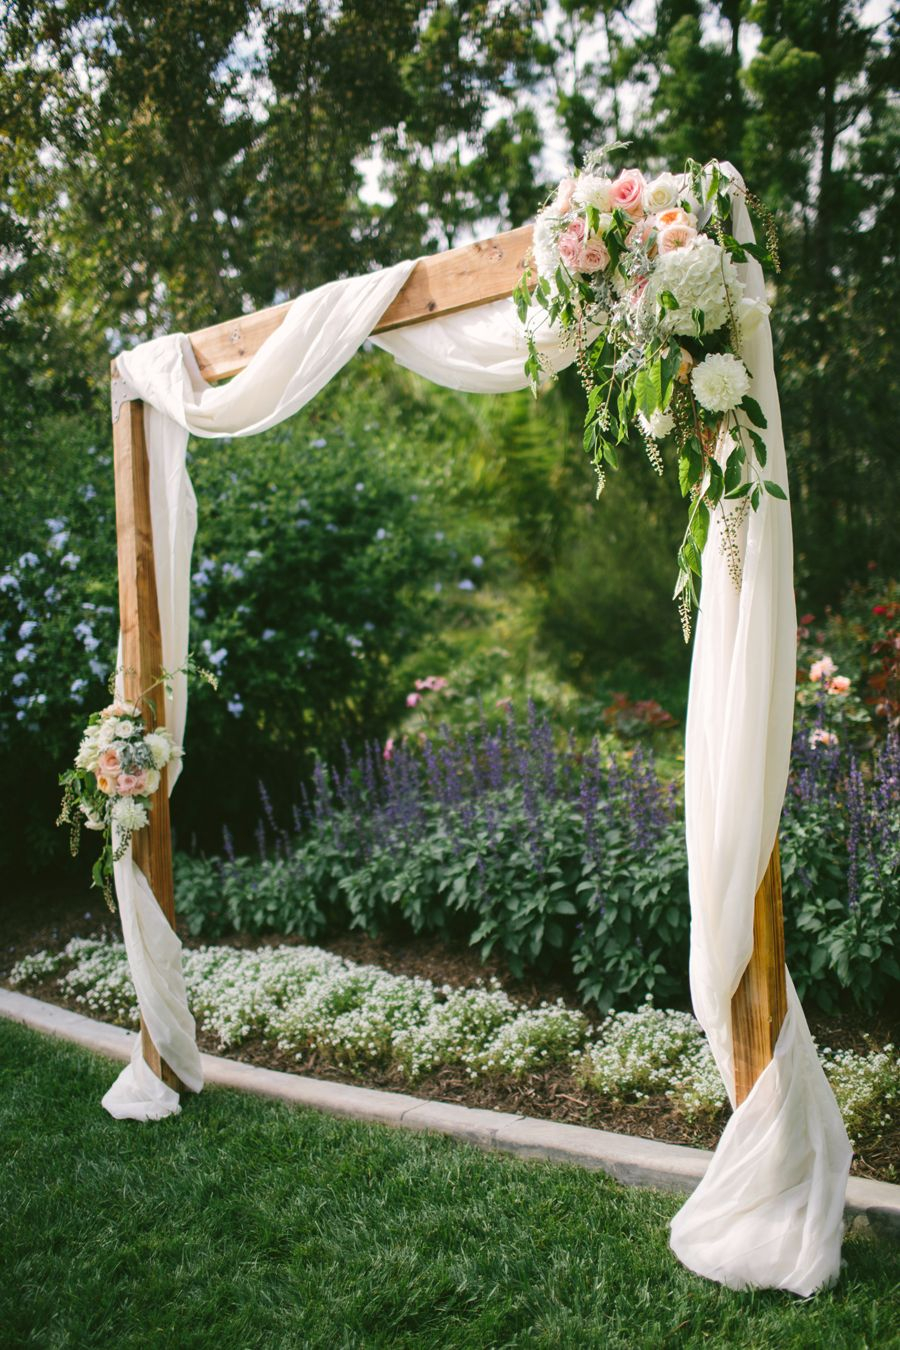 Romantic Meets Rustic Backyard Wedding Floral Arrangements throughout 14 Clever Ways How to Upgrade Country Backyard Wedding Ideas